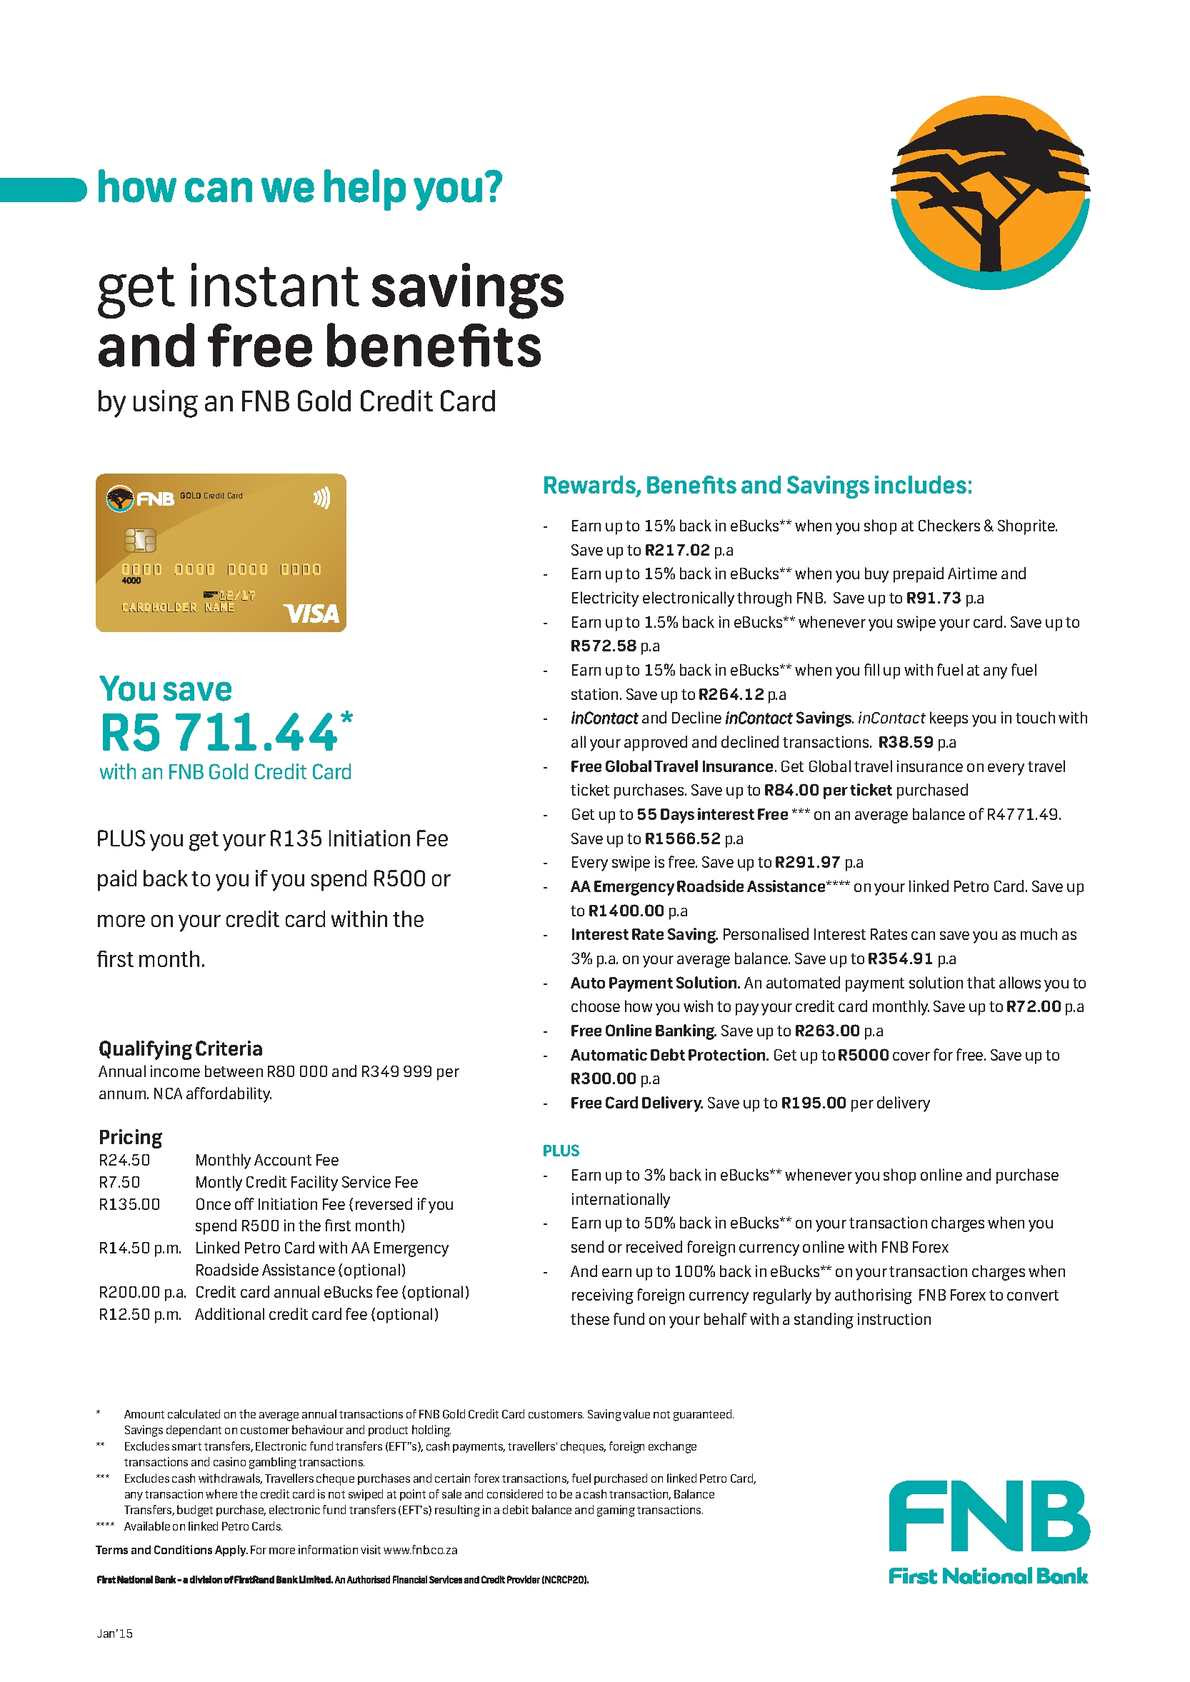 Calaméo - Instant Savings and Free Benefits by Using an FNB Gold Credit Card